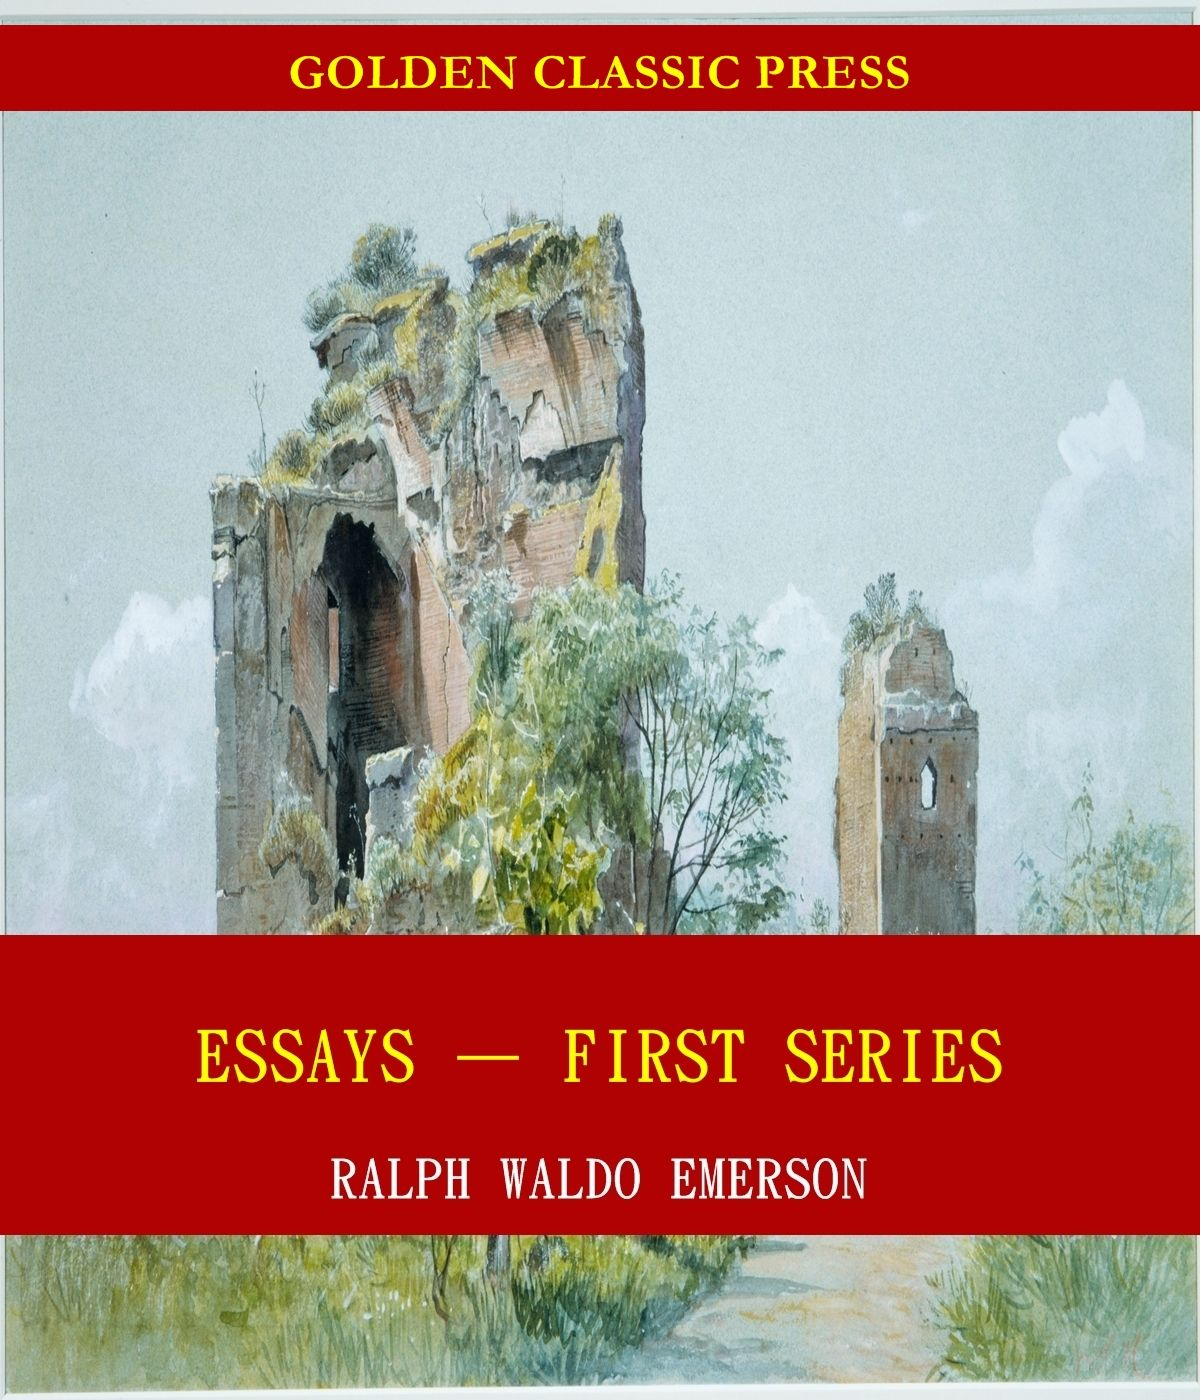 008 Essays First Series Essay Example Stunning In Zen Buddhism Emerson's Value Full